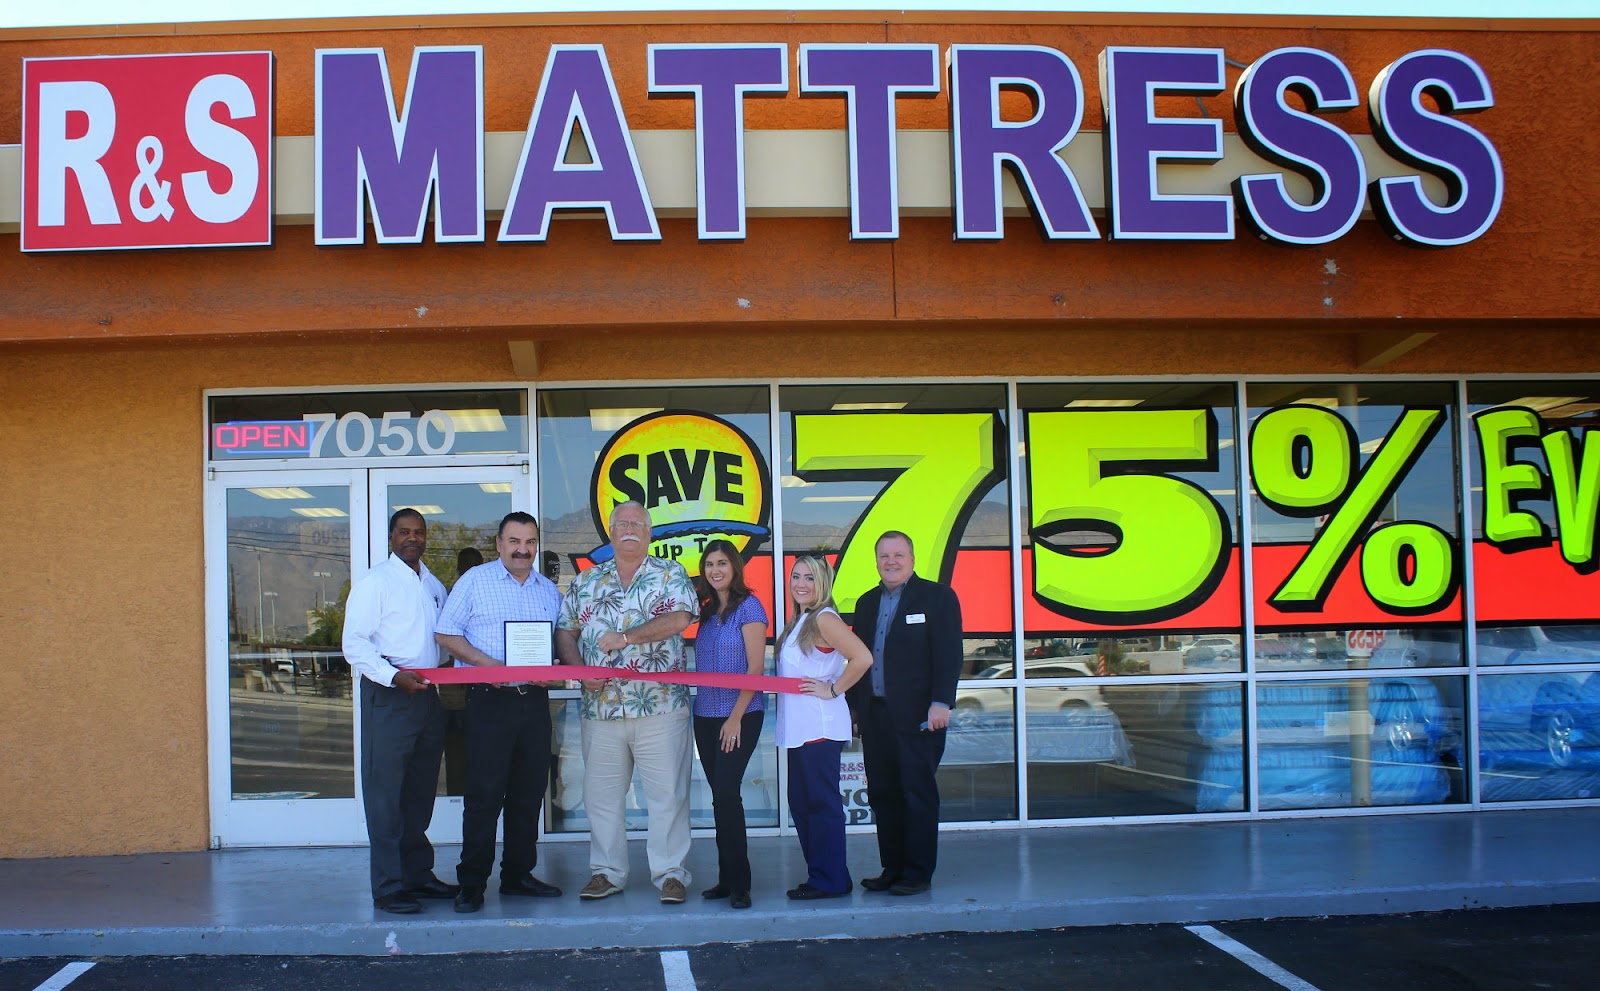 Sales on Brooklyn Bedding also on name brand mattresses. With savings up to 75%, with 30 day comfort guarantee, with no re-stocking fee!  R&S Mattress 7050 E. Broadway Boulevard, 85710 (520) 722-9066